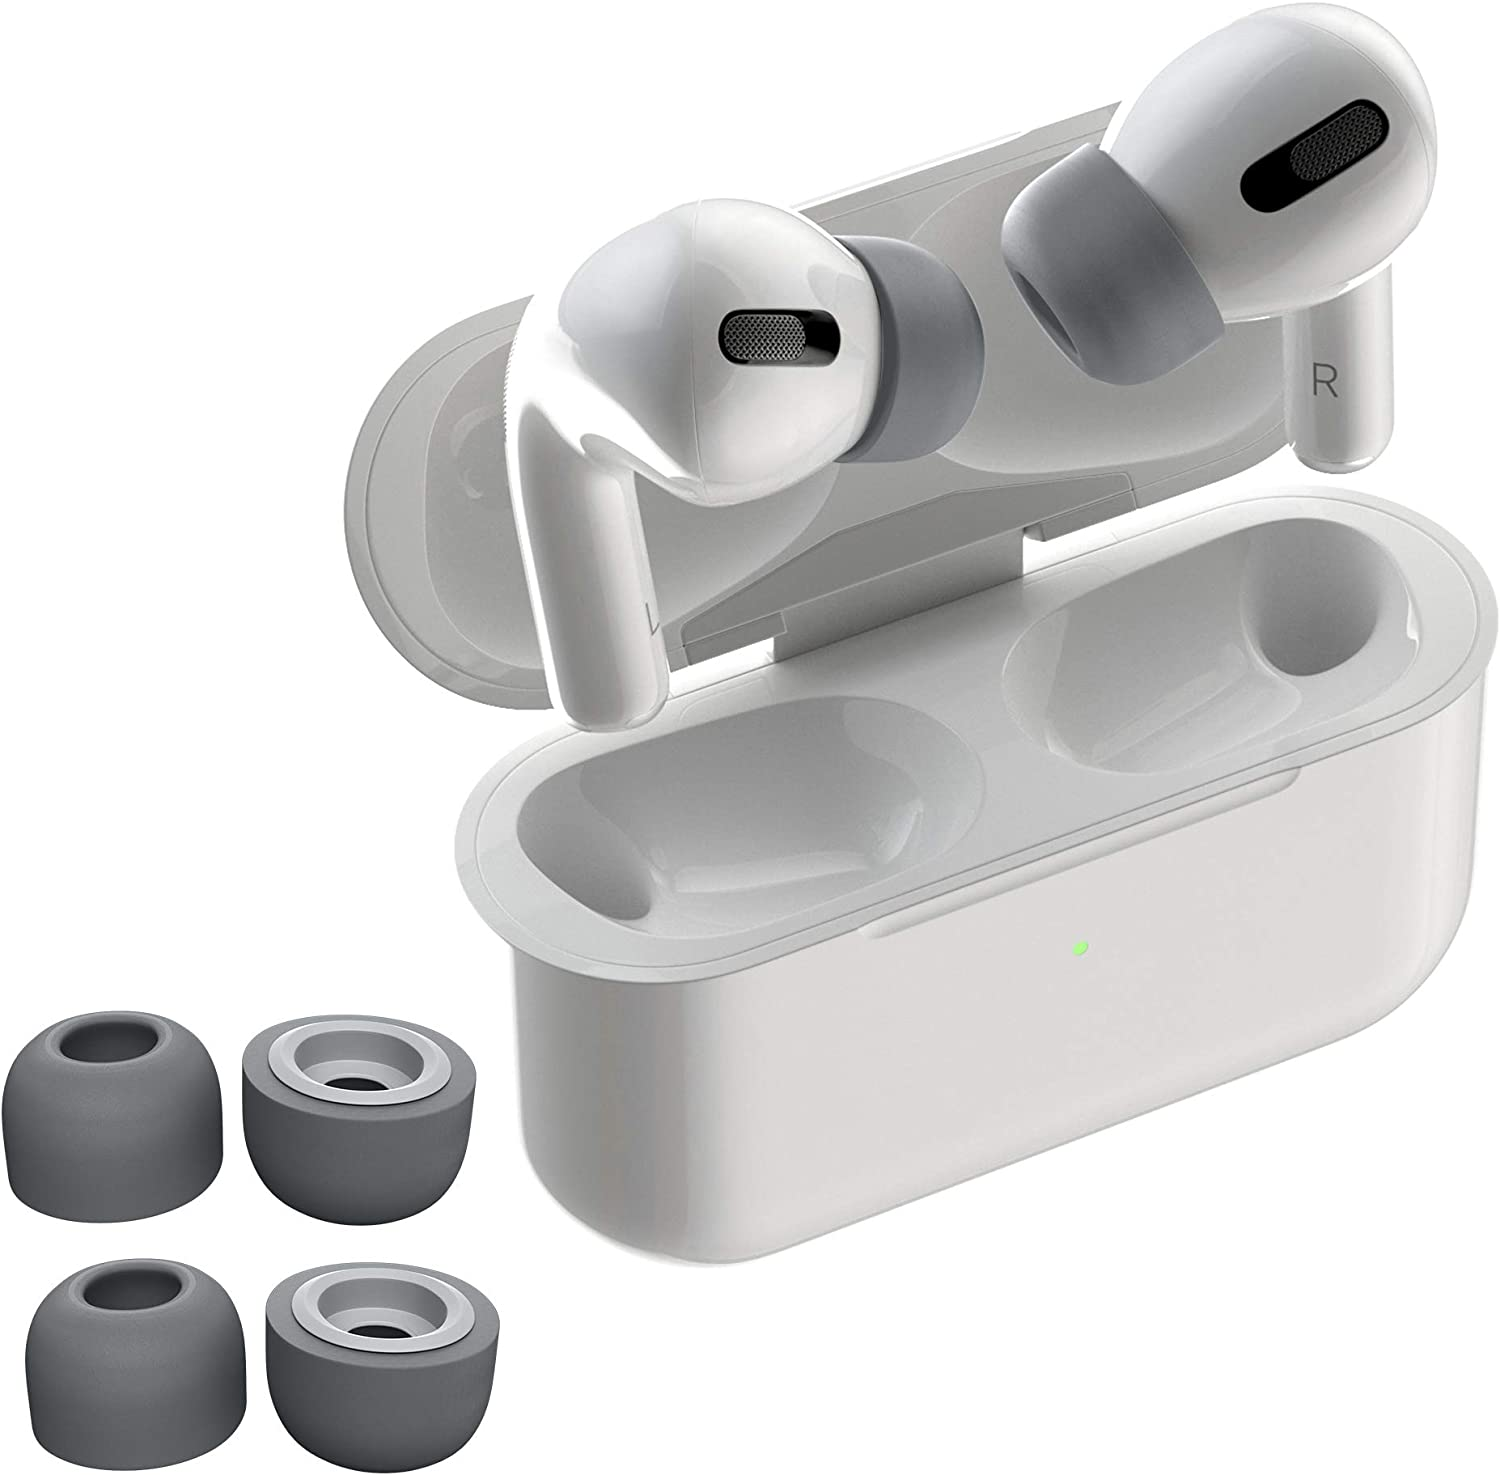 AirFoams Pro Foam Ear Tips for Airpods Pro. Premium Memory Foam Ear Tips. Stays in Your Ears. No Silicone Ear tip Pain. All Day Comfort. (2 Medium/Large, Space Gray)